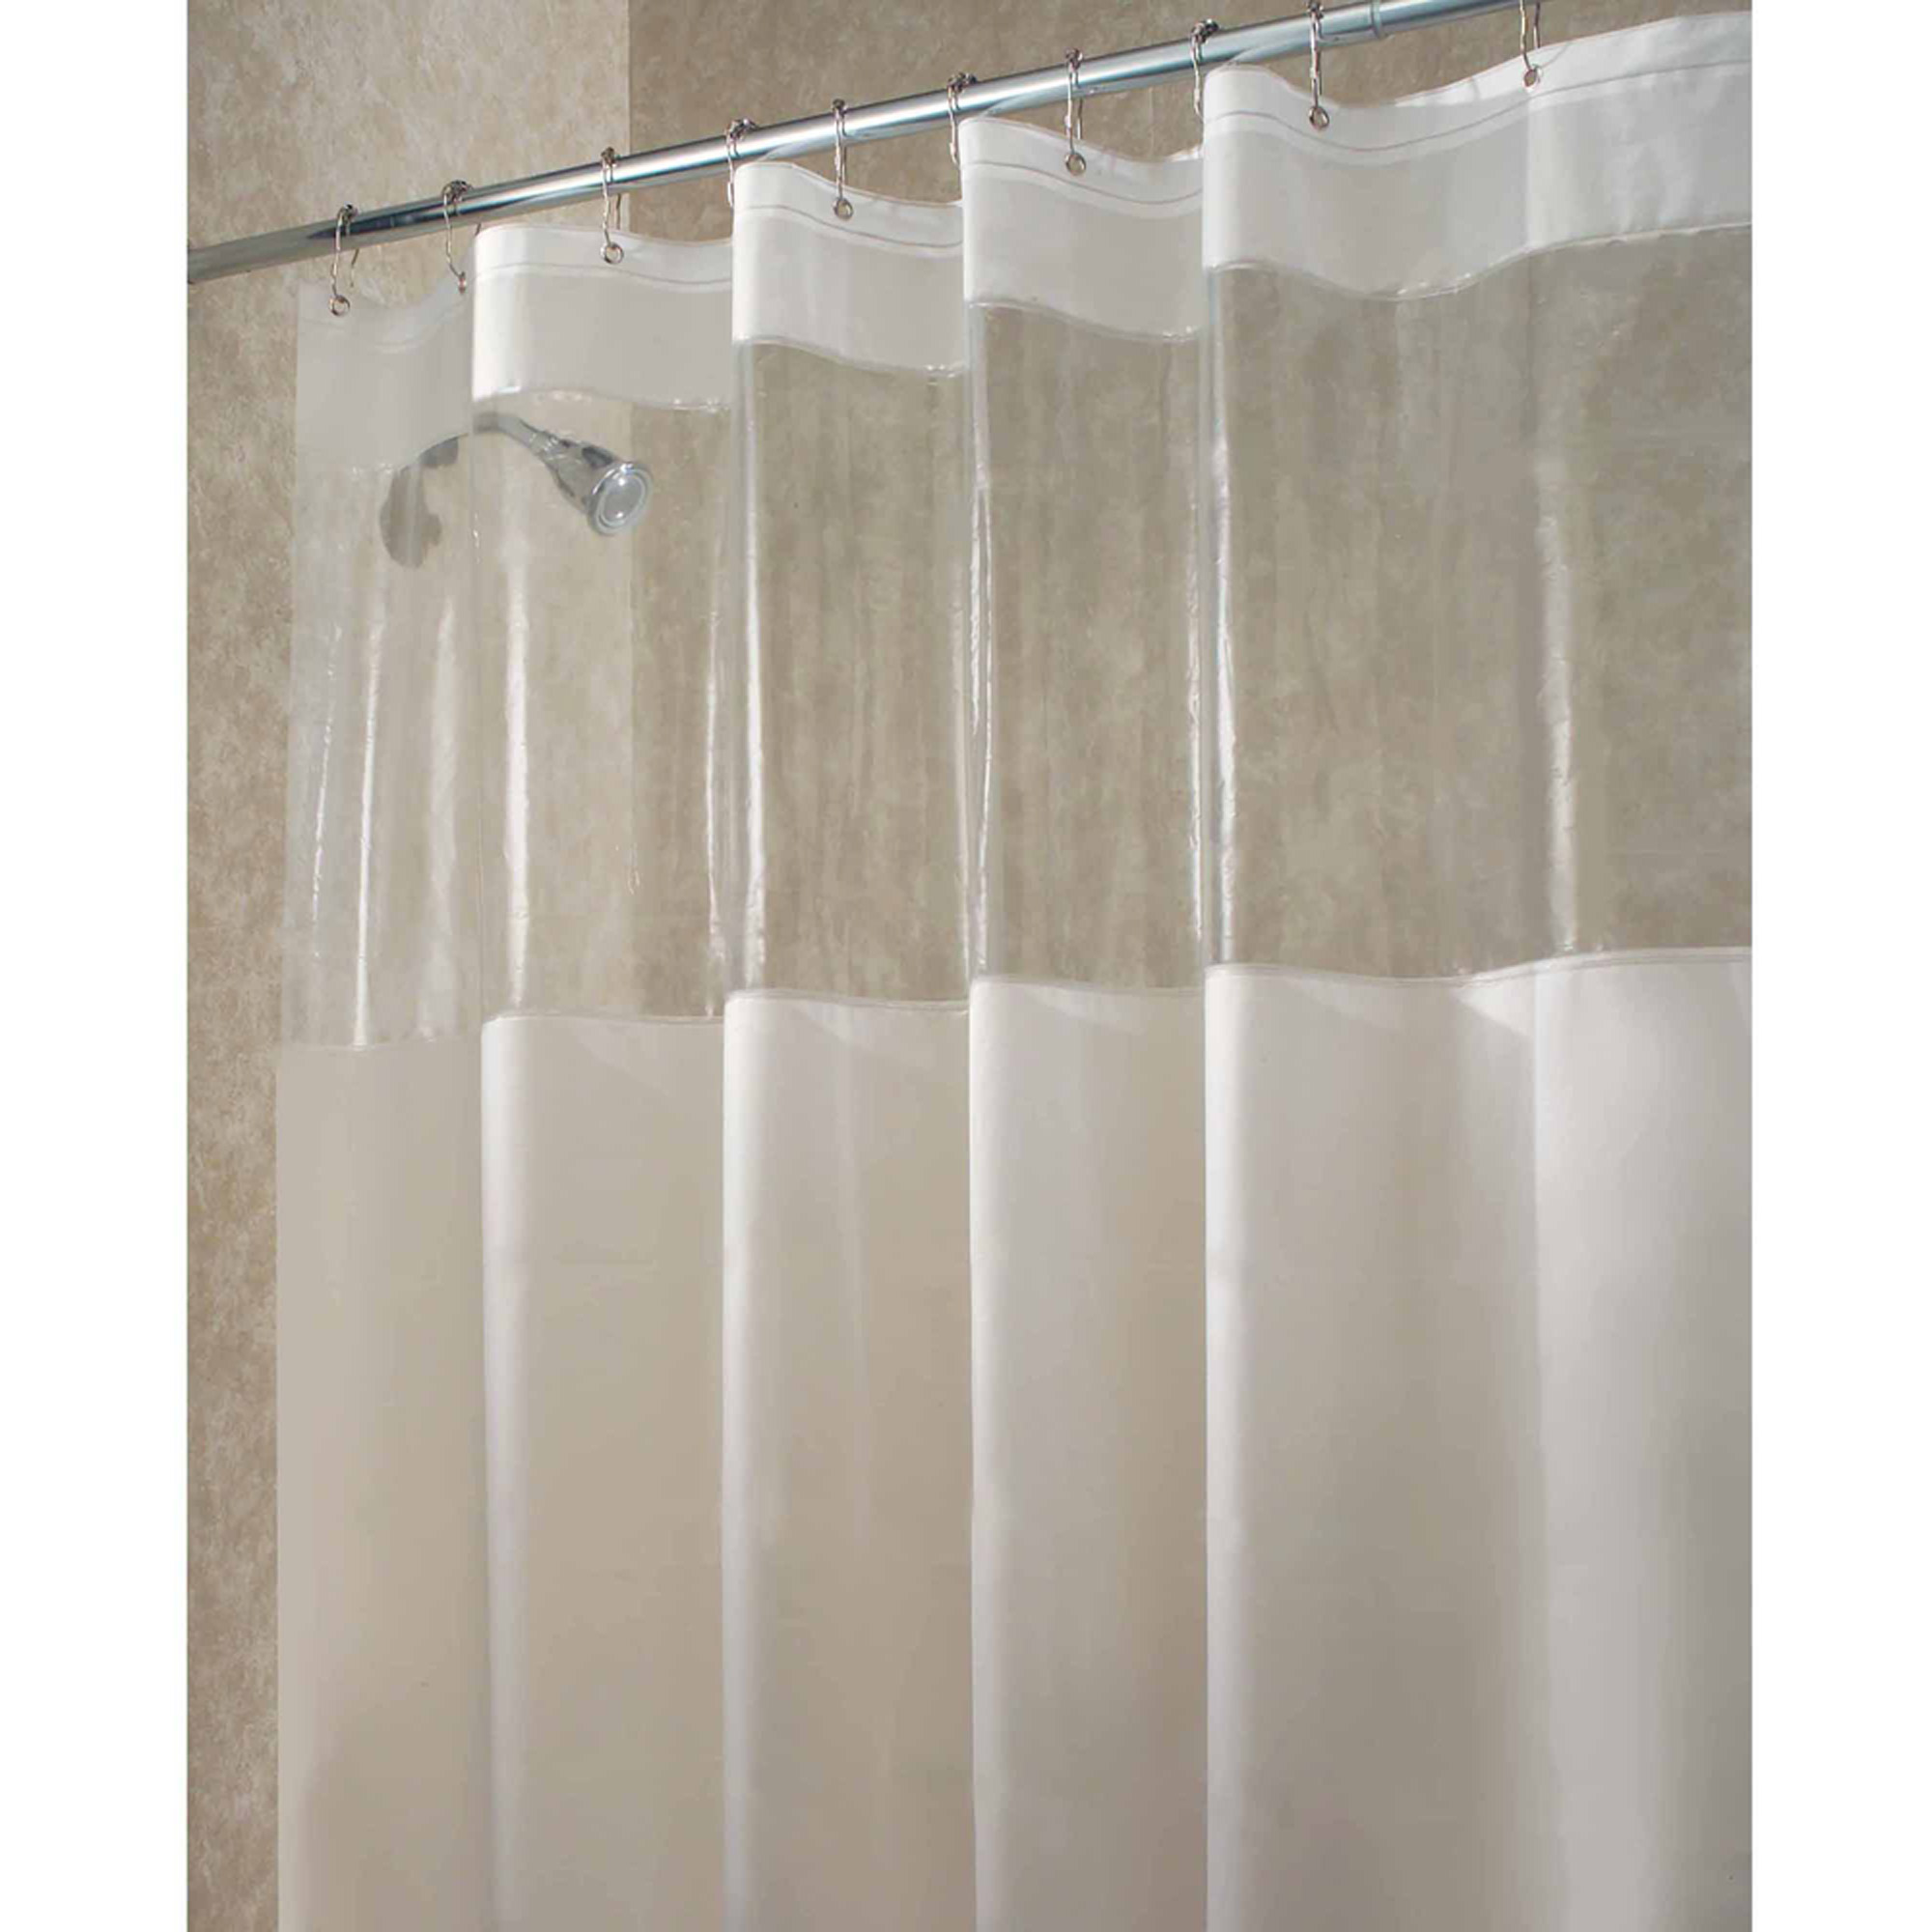 stall rexa gorgeous to shower living room better enclosure dead drop curtainsors oror curtains corner or version design curtain door whats cover by winsome fixed outstanding